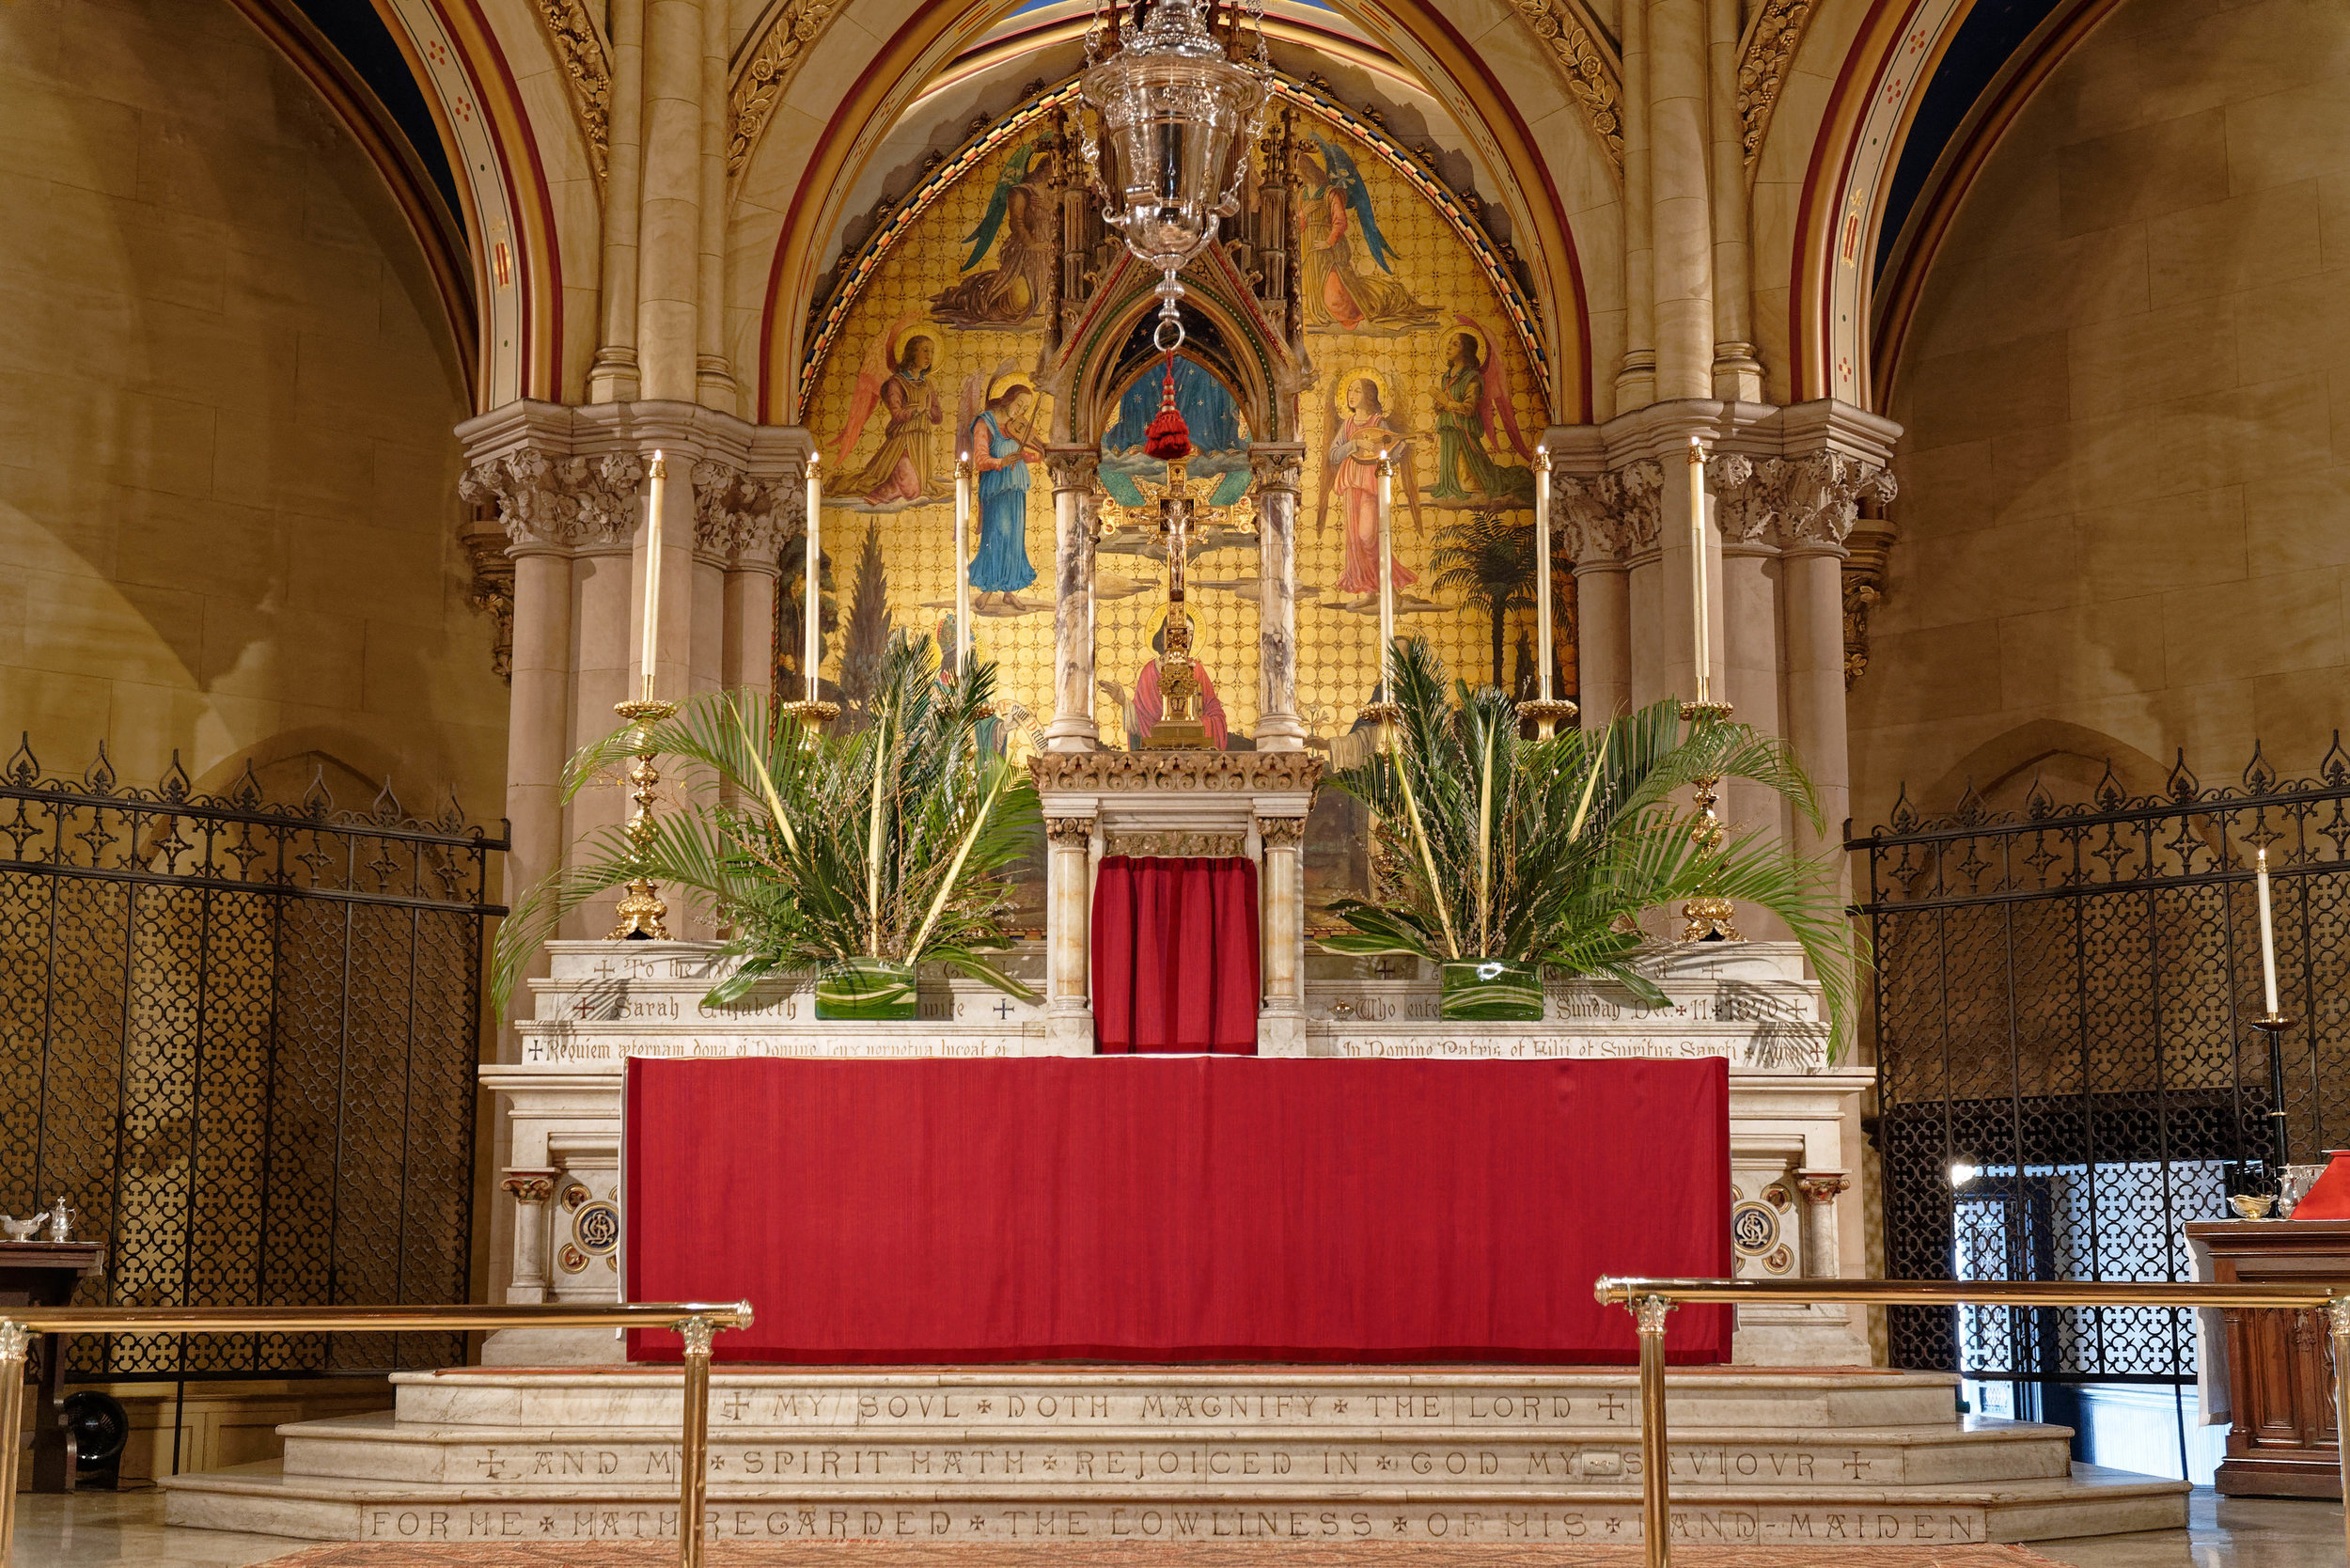 The High Altar, The Sunday of the Passion: Palm Sunday, April, 14, 2019   Photo by Daniel Picard